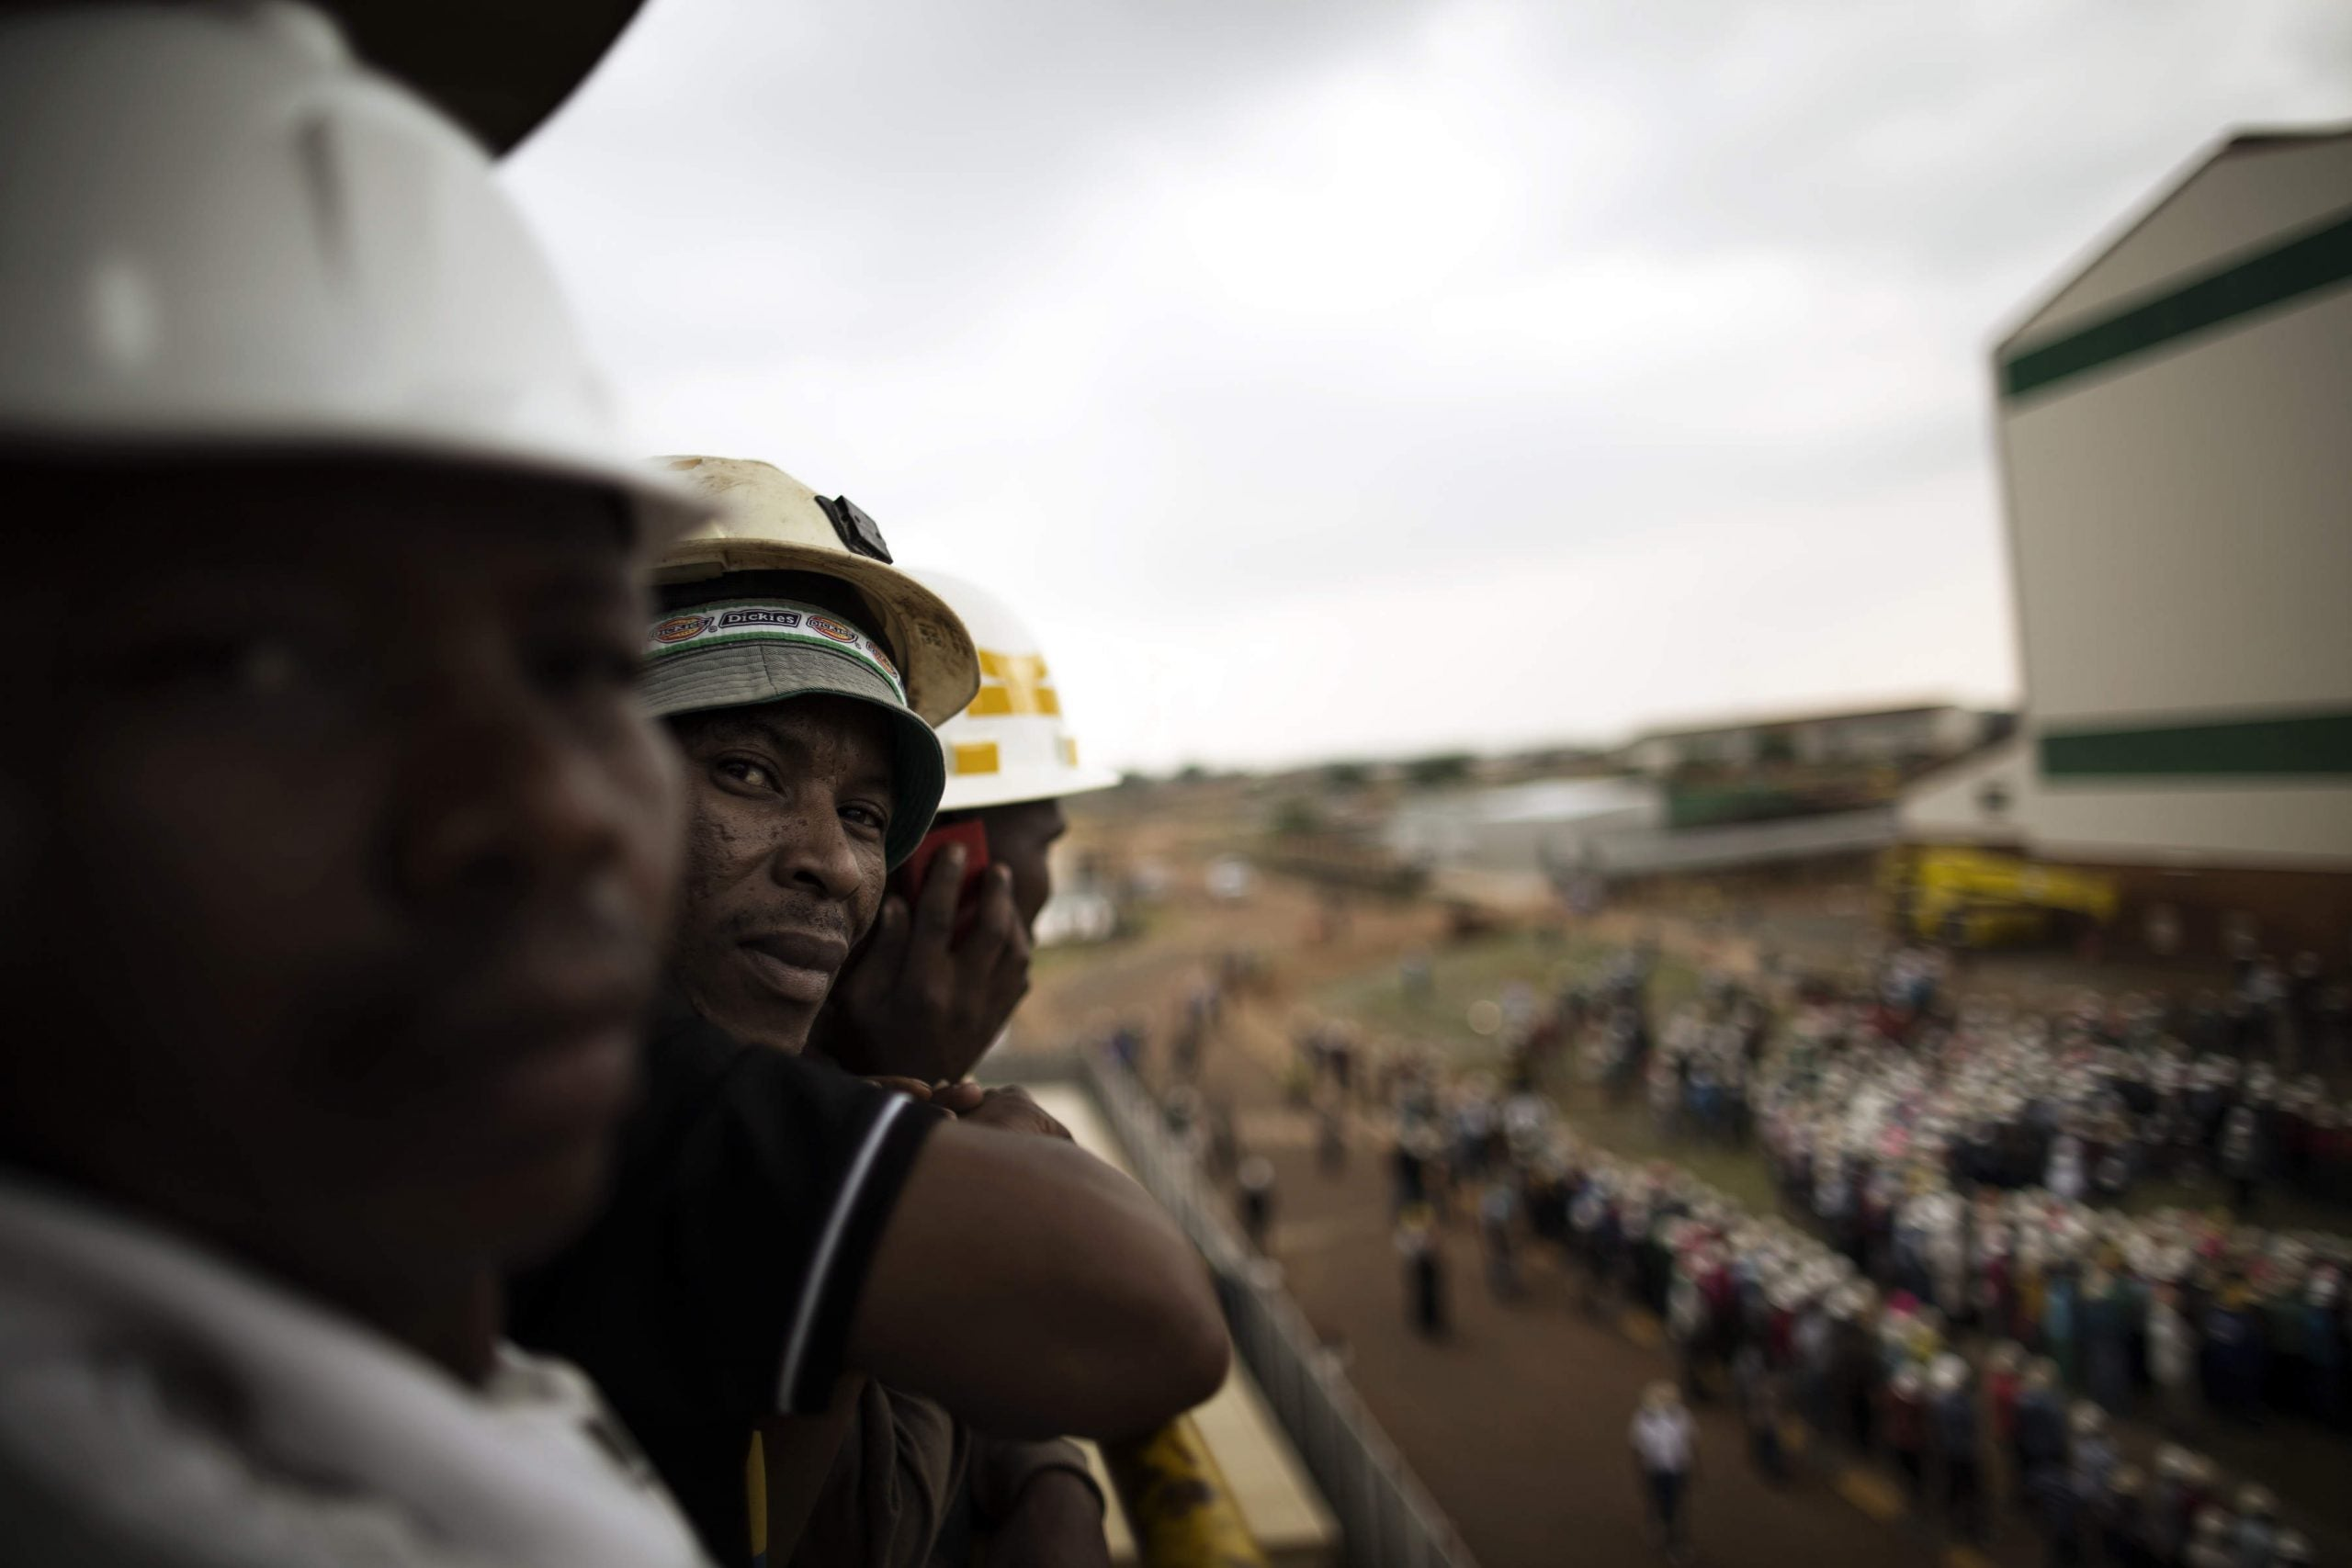 Underground epidemic: the tuberculosis crisis in South Africa's gold mines